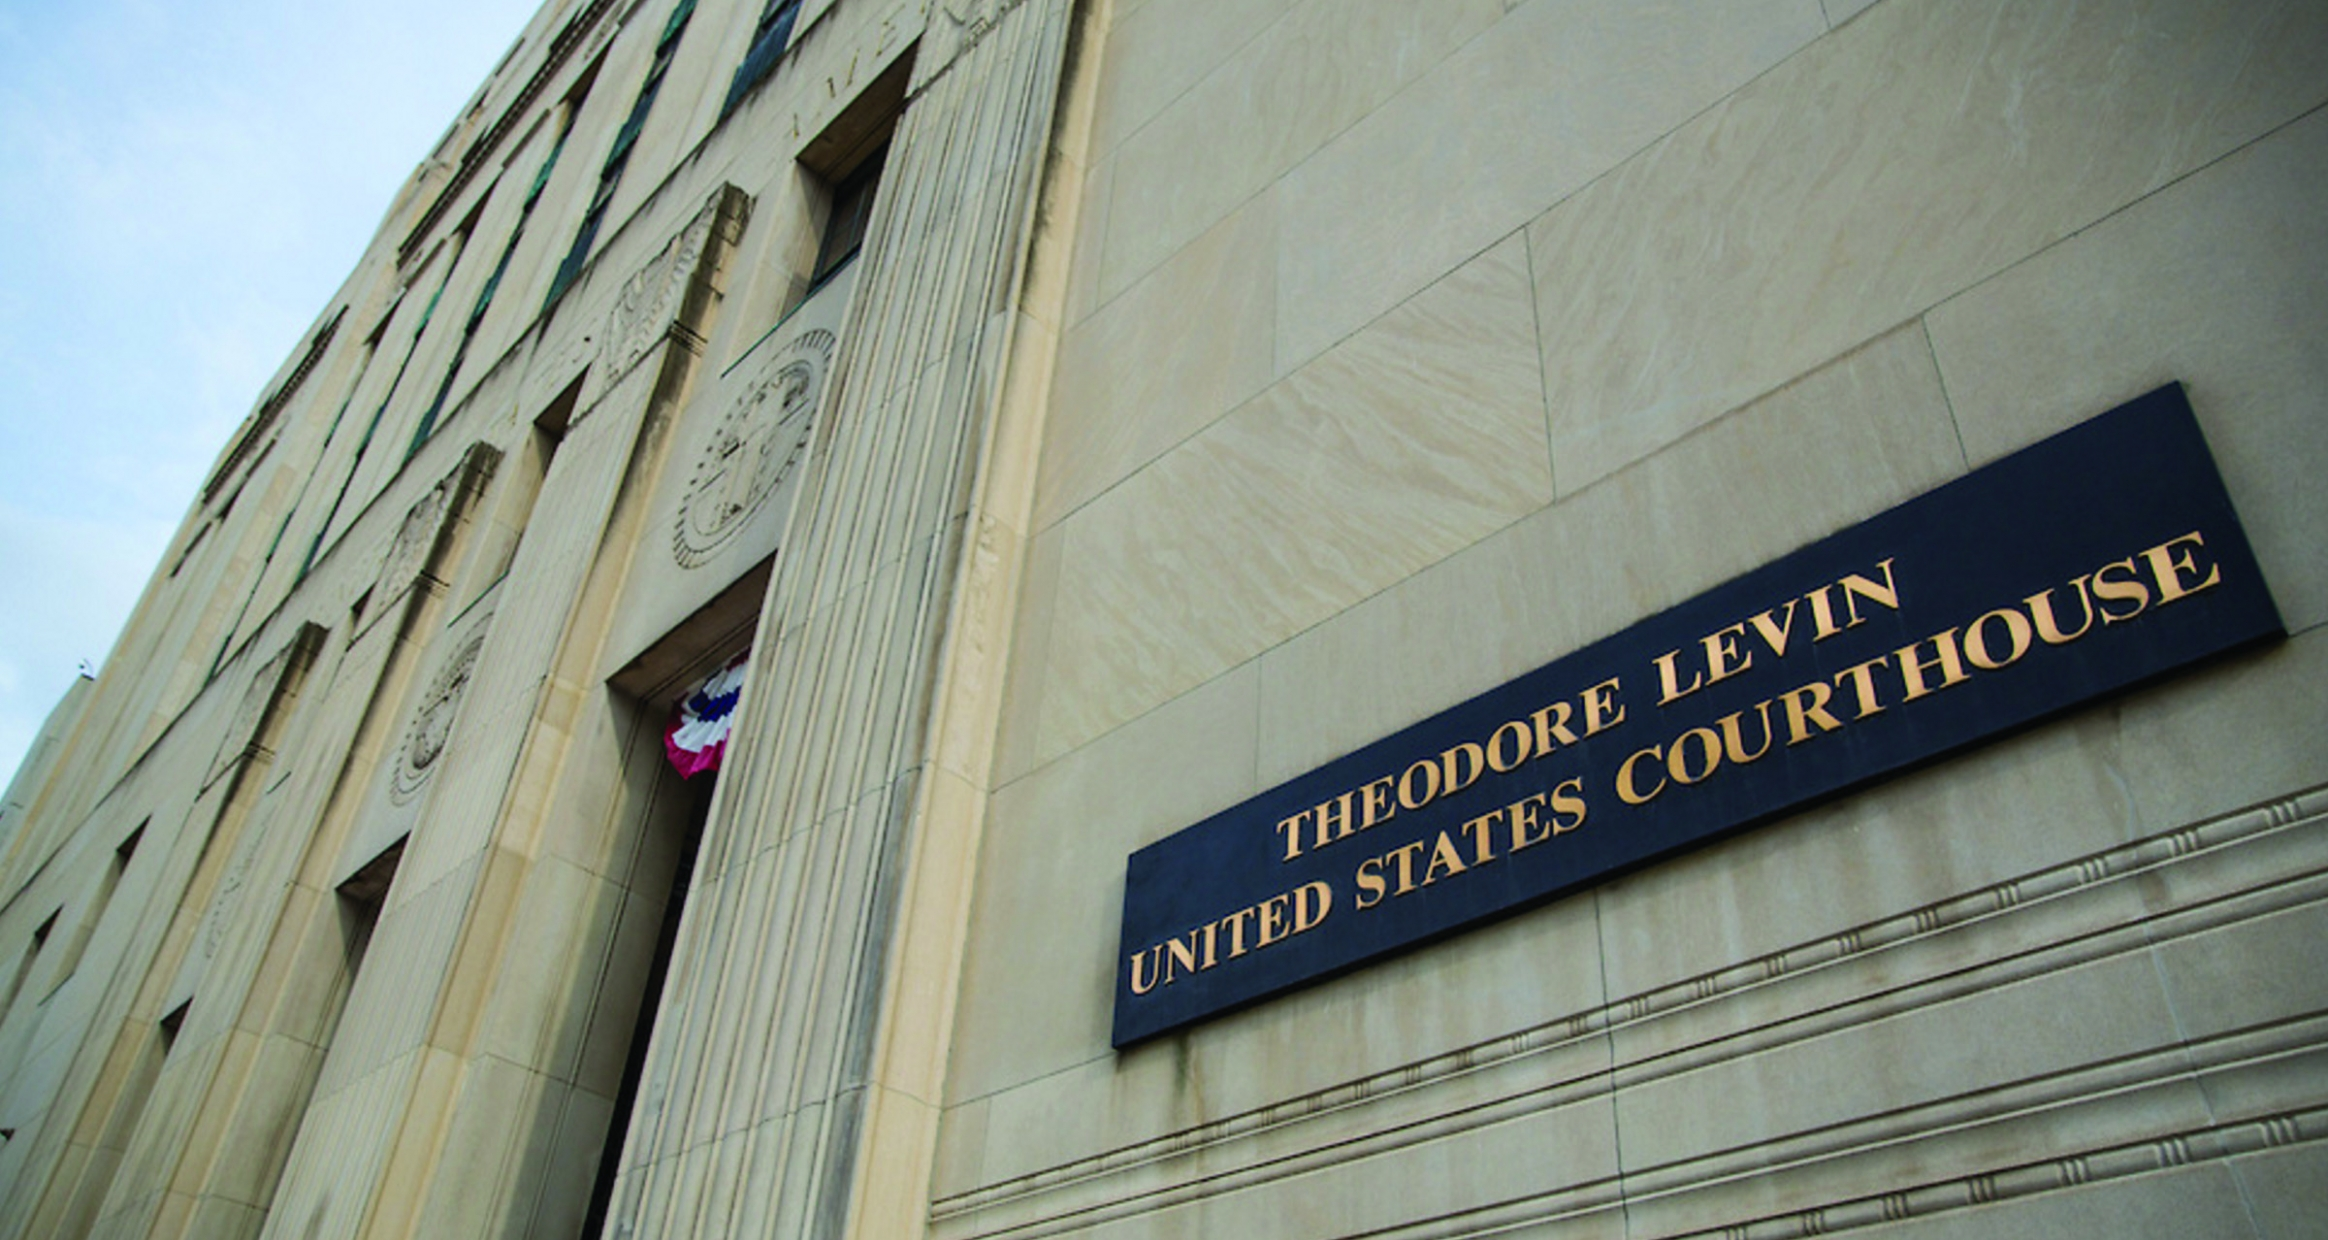 Theodore Levin U.S. Courthouse Exterior Detail